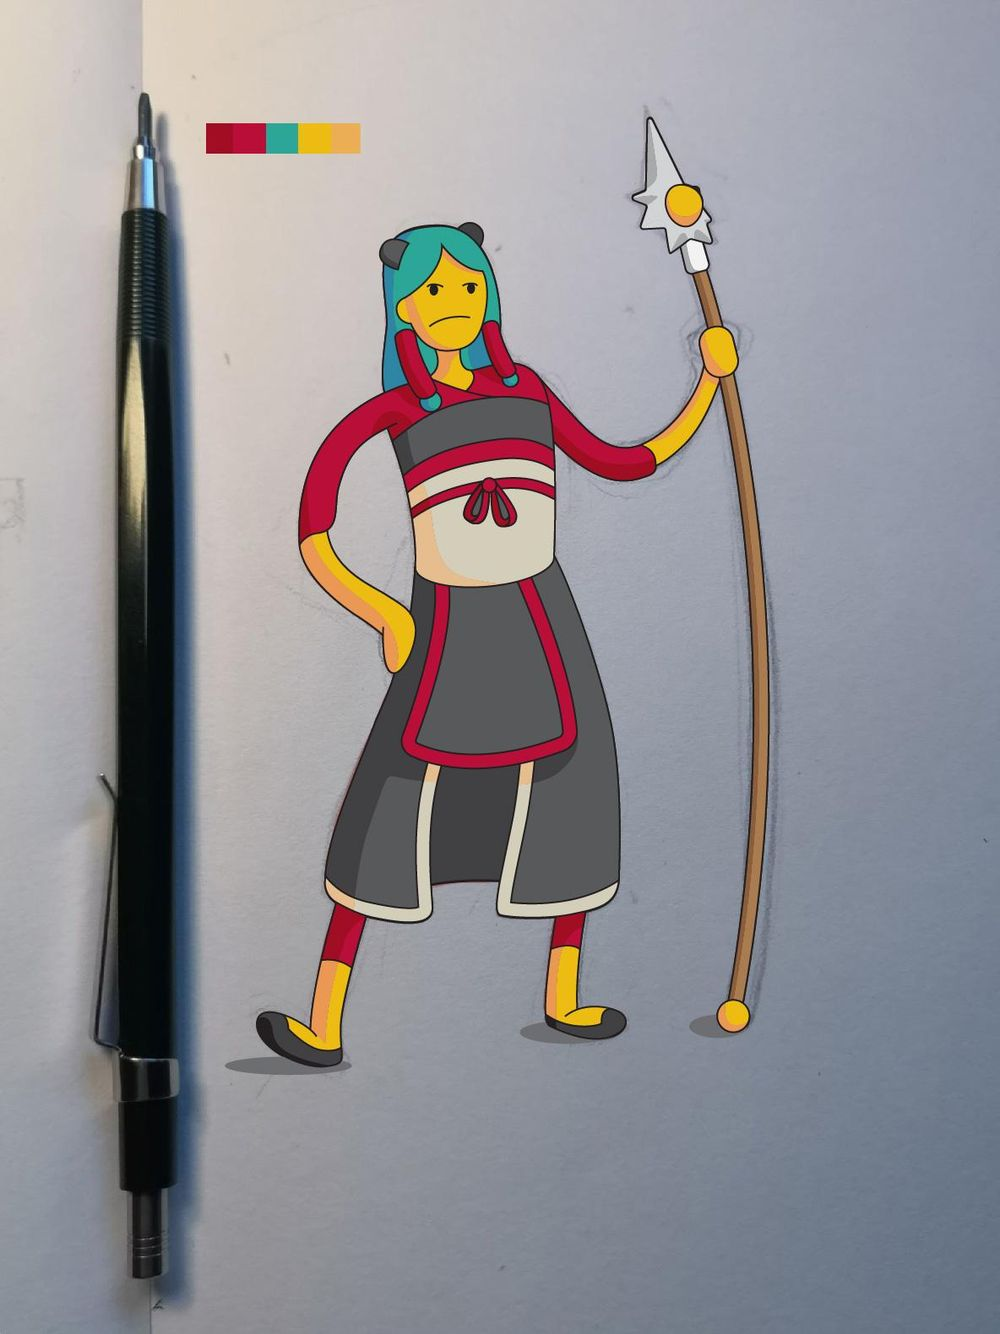 Lady Dragon Warrior [Vector Illustration] - image 1 - student project